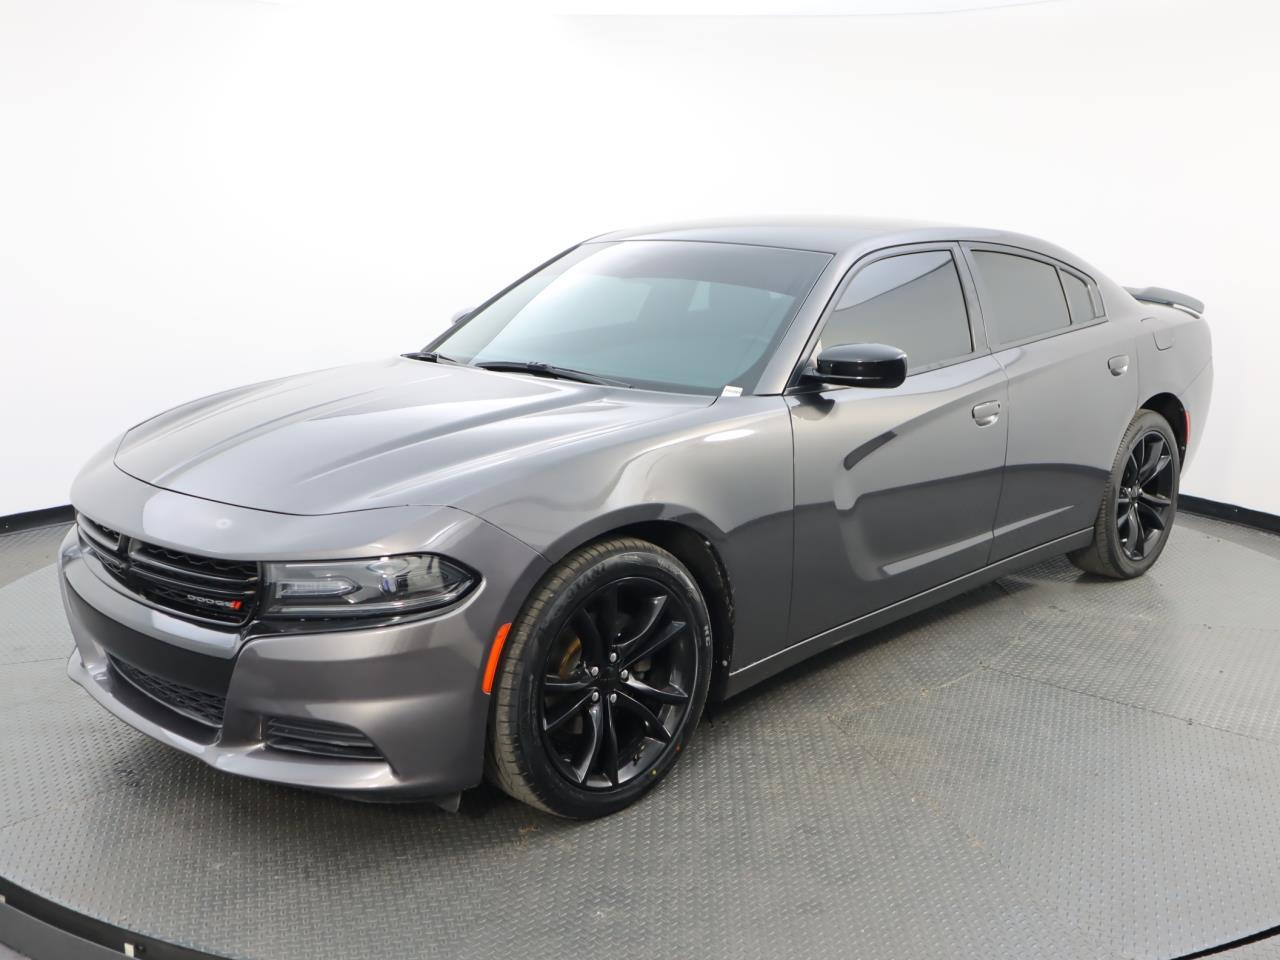 Used DODGE CHARGER 2016 MIAMI SE